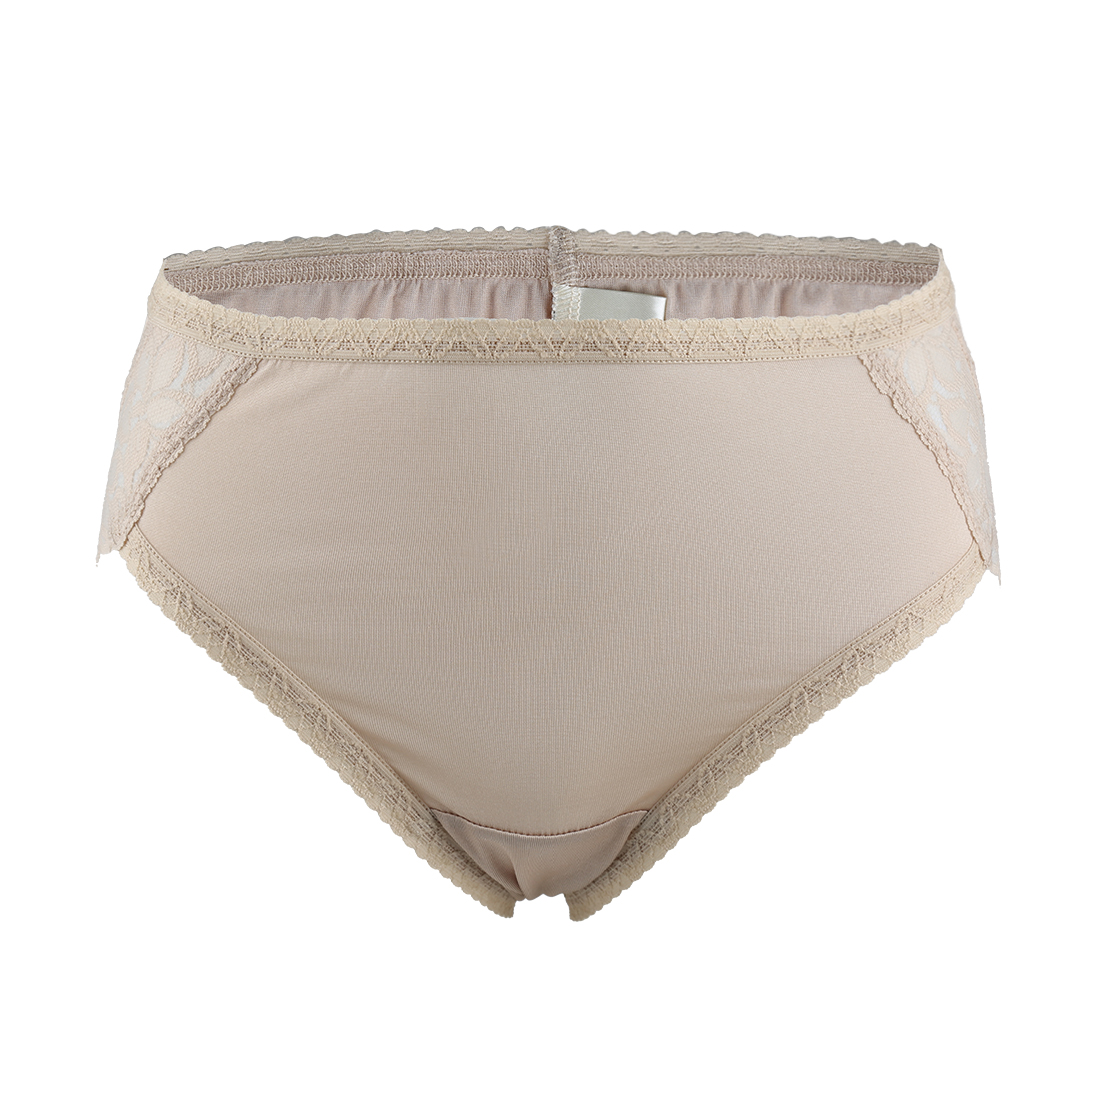 Women Mulberry Silk Laced Breathable Translucent Hi-Cut Panties Beige XLarge